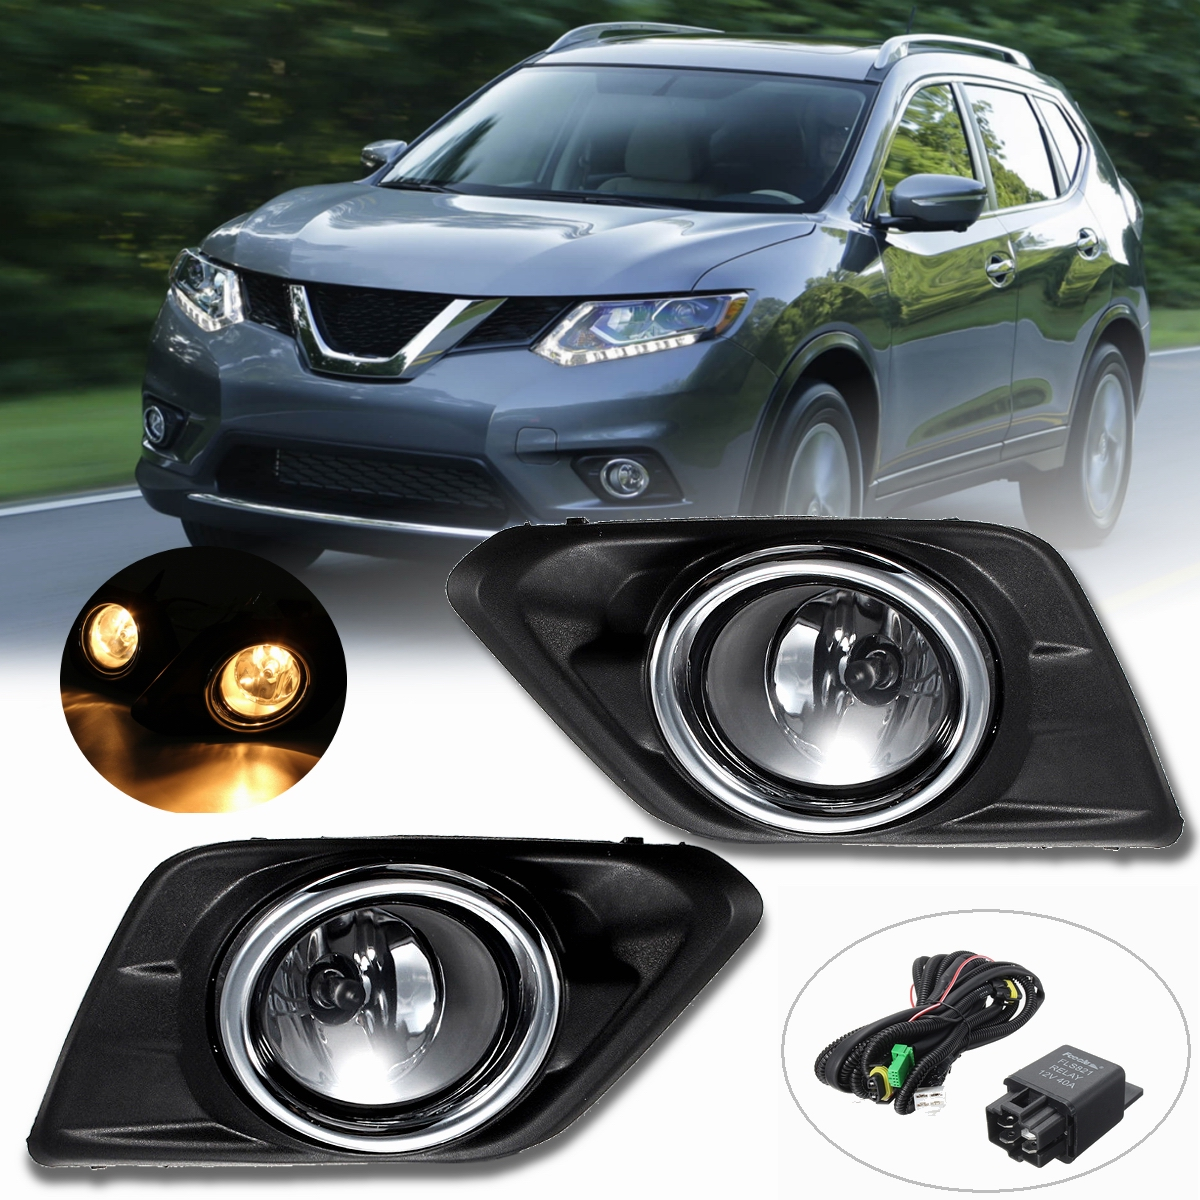 1 Pair Chrome Clear Lens Car High Brightness Bumper Fog Light Lamp Styling For Nissan Rogue SUV 14 16 w/Bulbs Switch Bezel Kit